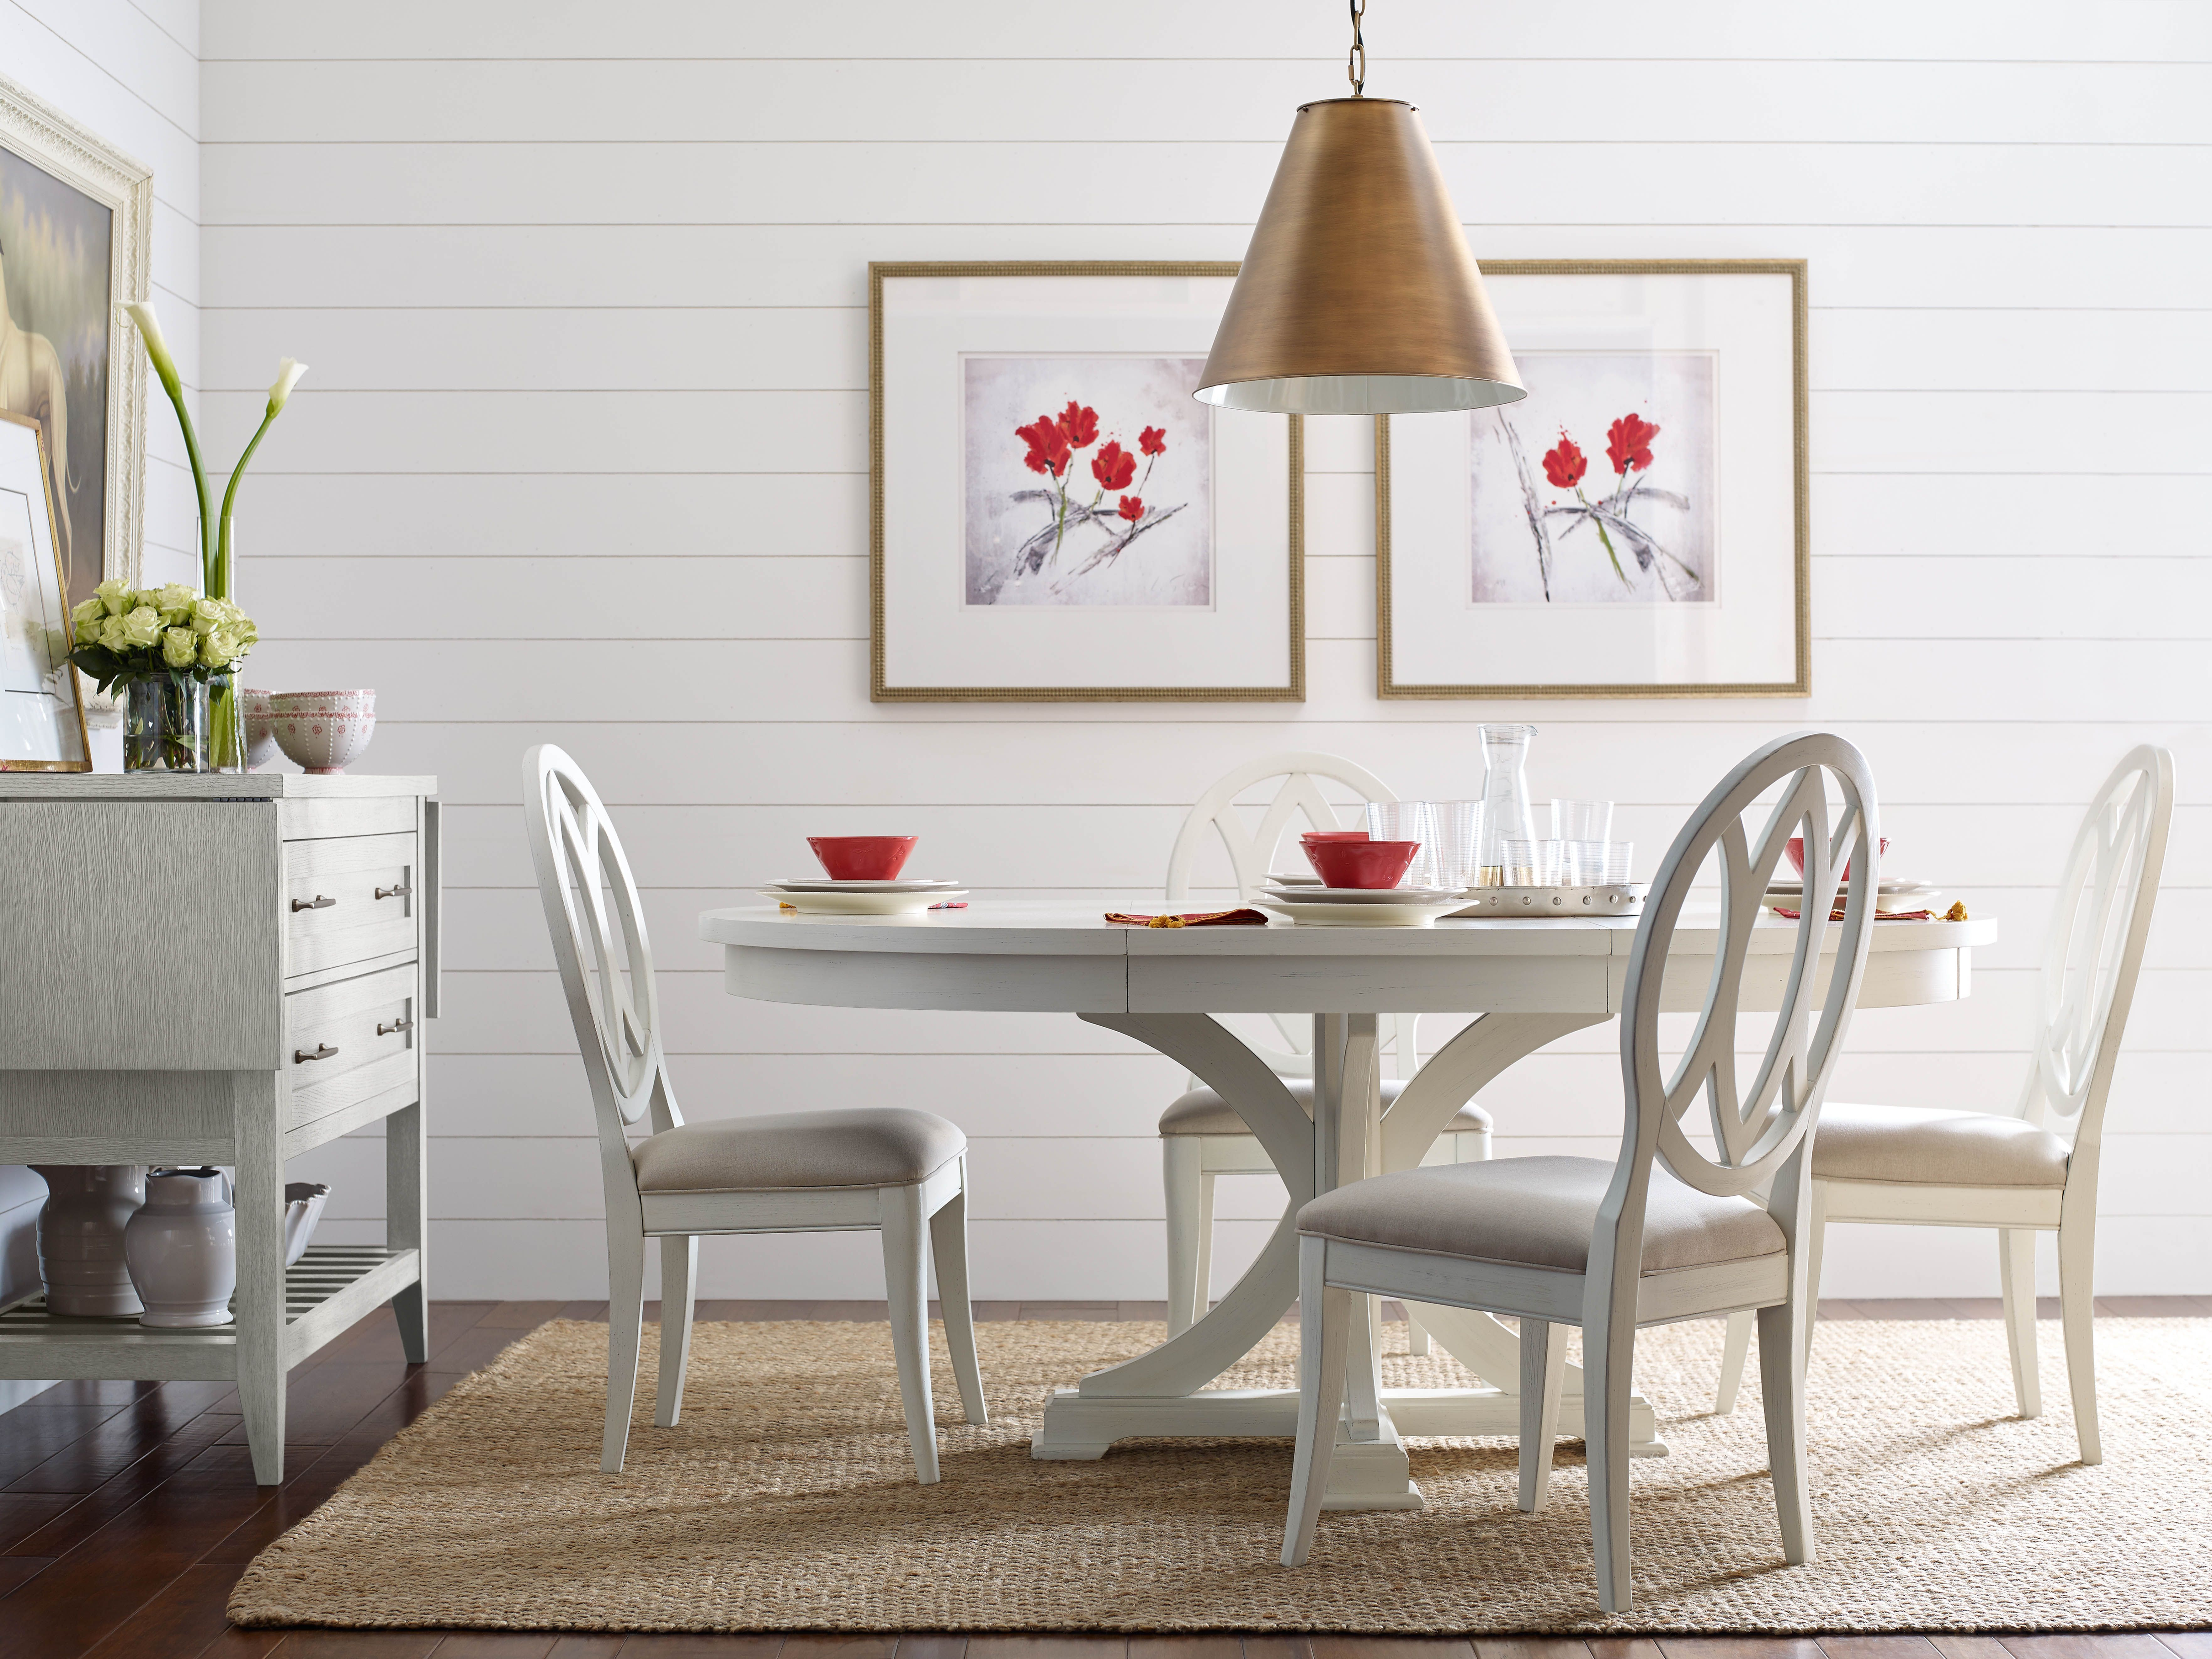 Rachael Ray S Everyday Dining Room In Sea Salt Legacy Classic Furniture Furniture Homefurniture Round Dining Room Round Dining Room Sets Casual Dining Rooms